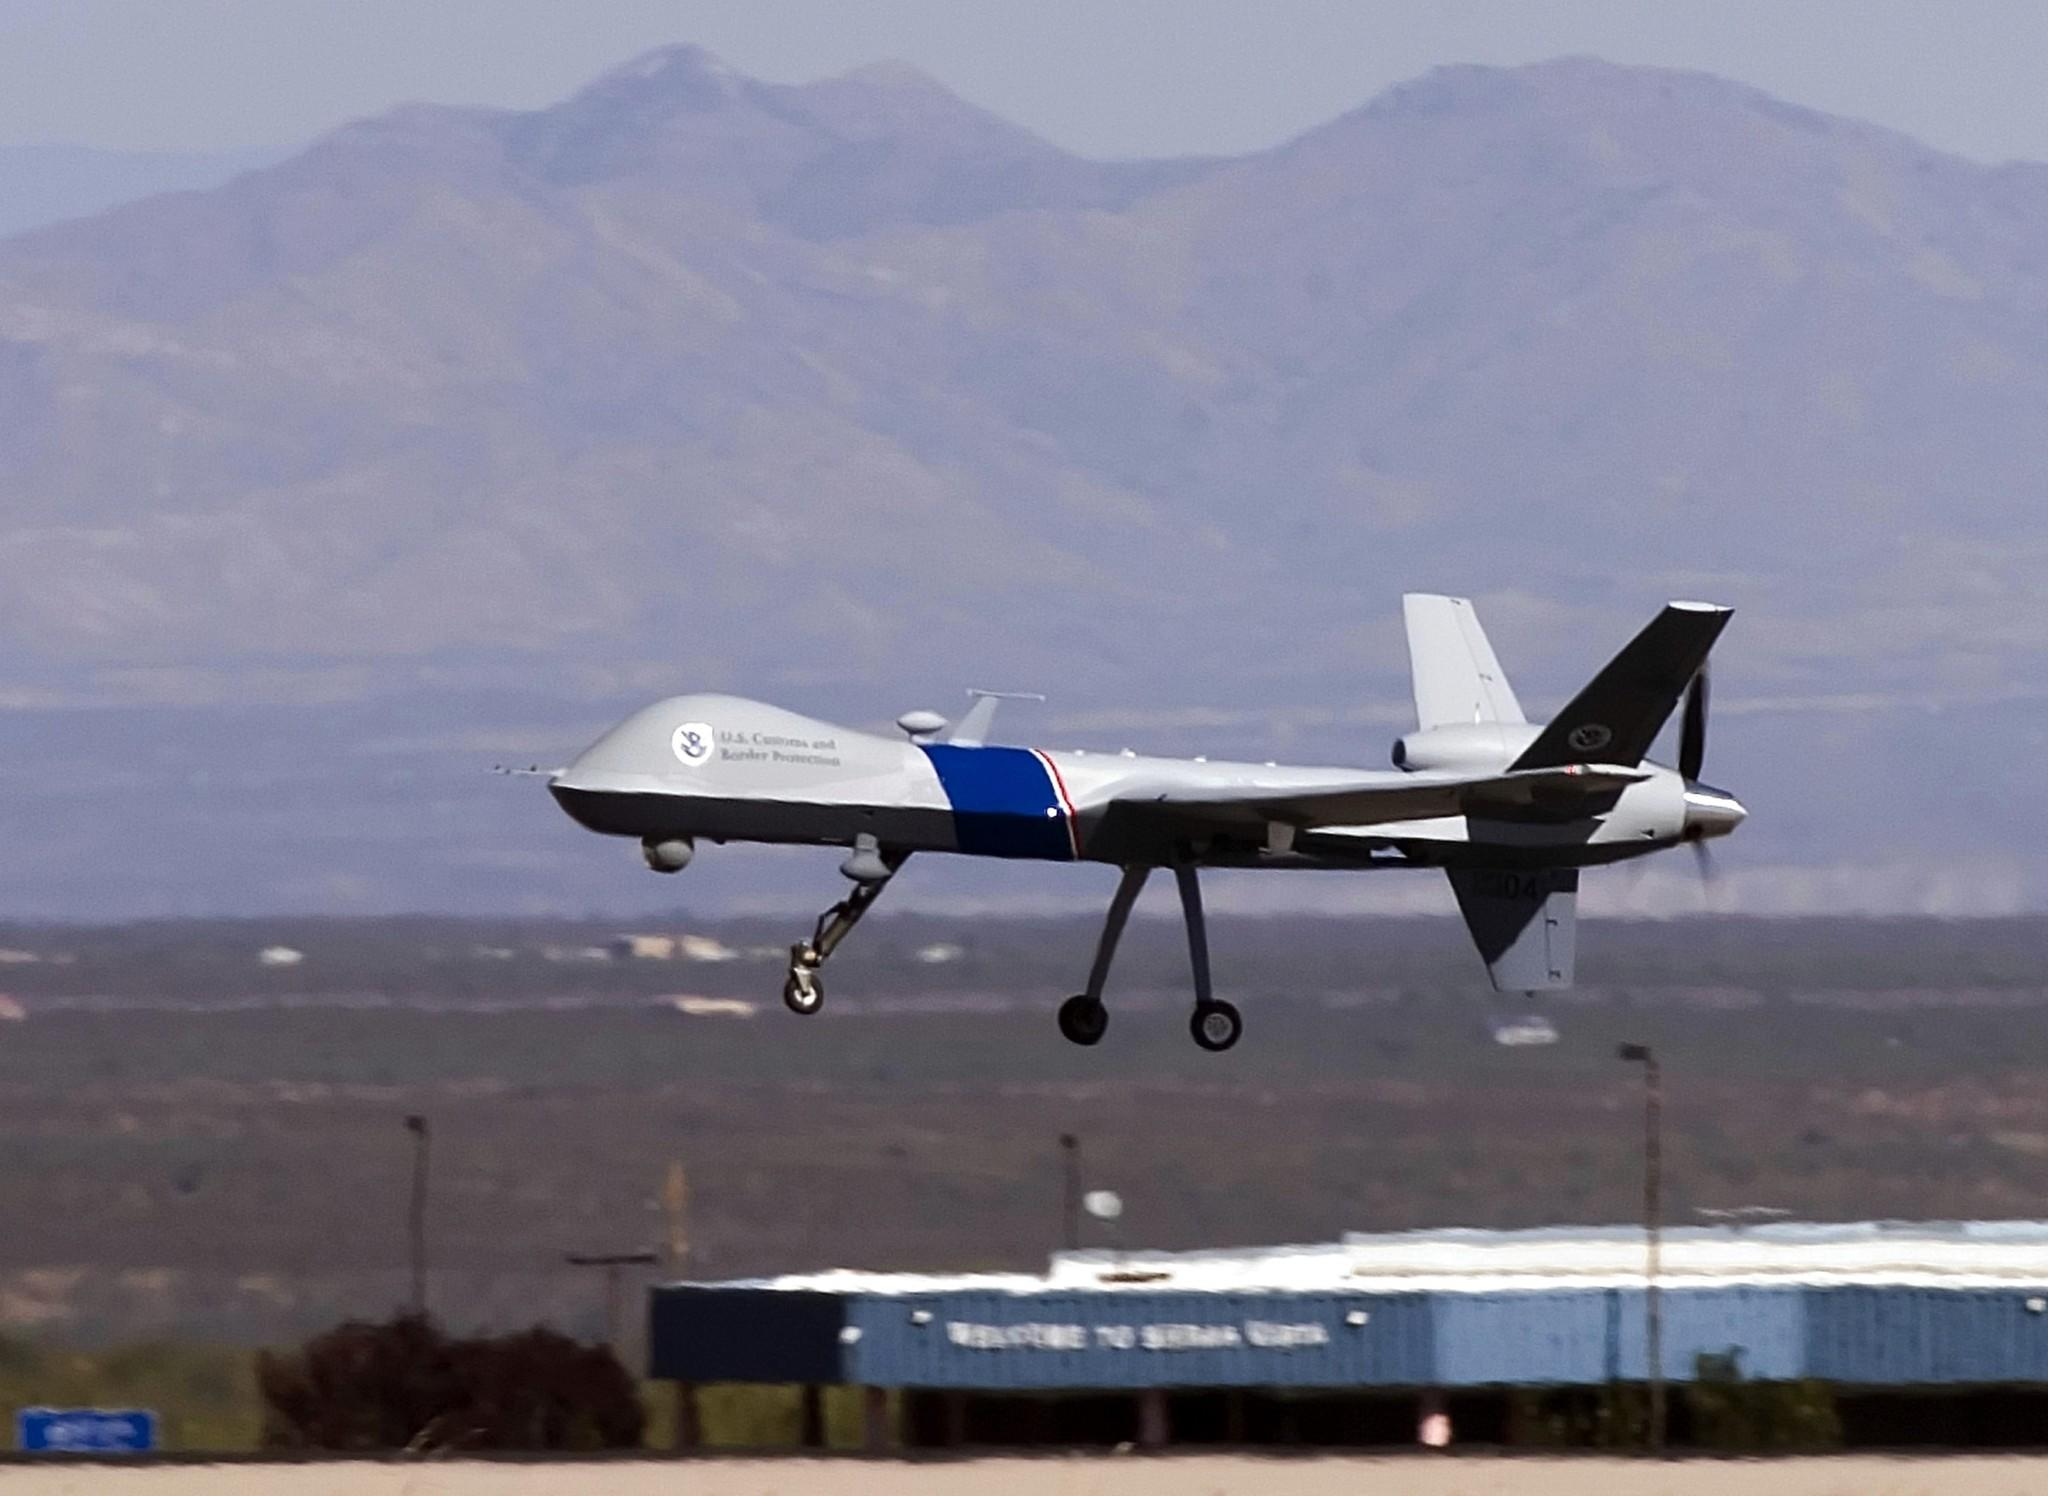 The MQ-9 Predator B, an unmanned surveillance aircraft system, unveiled by the U.S. Customs and Border Protection, takes off at Libby Army Airfield at Ft. Huachuca in Sierra Vista, Ariz. CBP will use the MQ-9 Predator aircraft to patrol the southern border of the United Sates in order to stop the illegal entry of thousands of Mexican nationals and drug runners who use the vast expanses of the Sonoran Desert to cross into southern Arizona, daily.